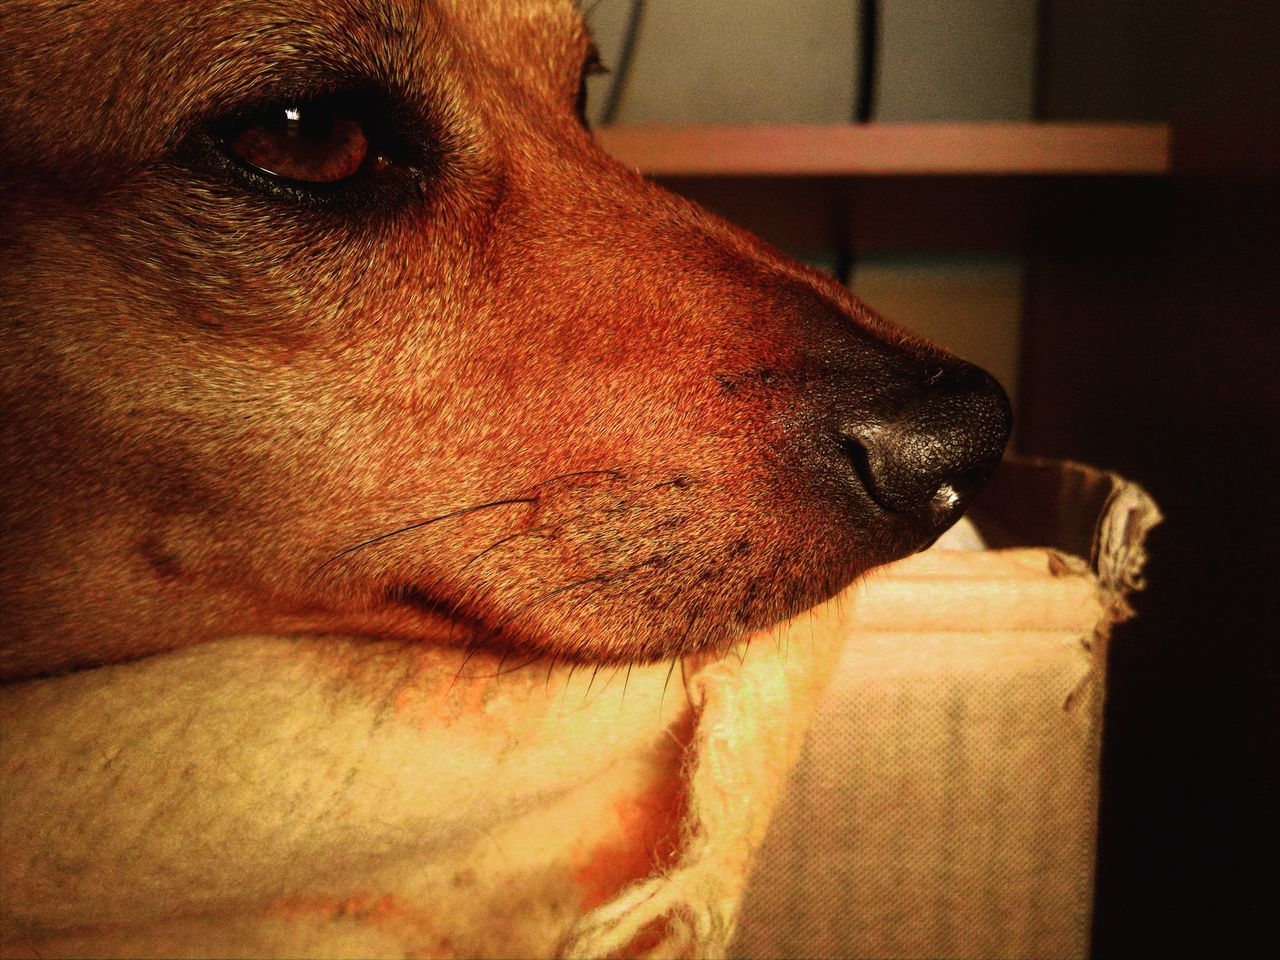 Serietà Serious Animal Themes Domestic Animals Dog Pets Close-up Brown Manual Focus Personal Perspective Doggy Eye4photography  Doggy Love Dog Love Eye4photography  Living The Moment Animal Head  One Animal Pinscher Part Of Sadface Animal Head  Animals Taking Photos No People